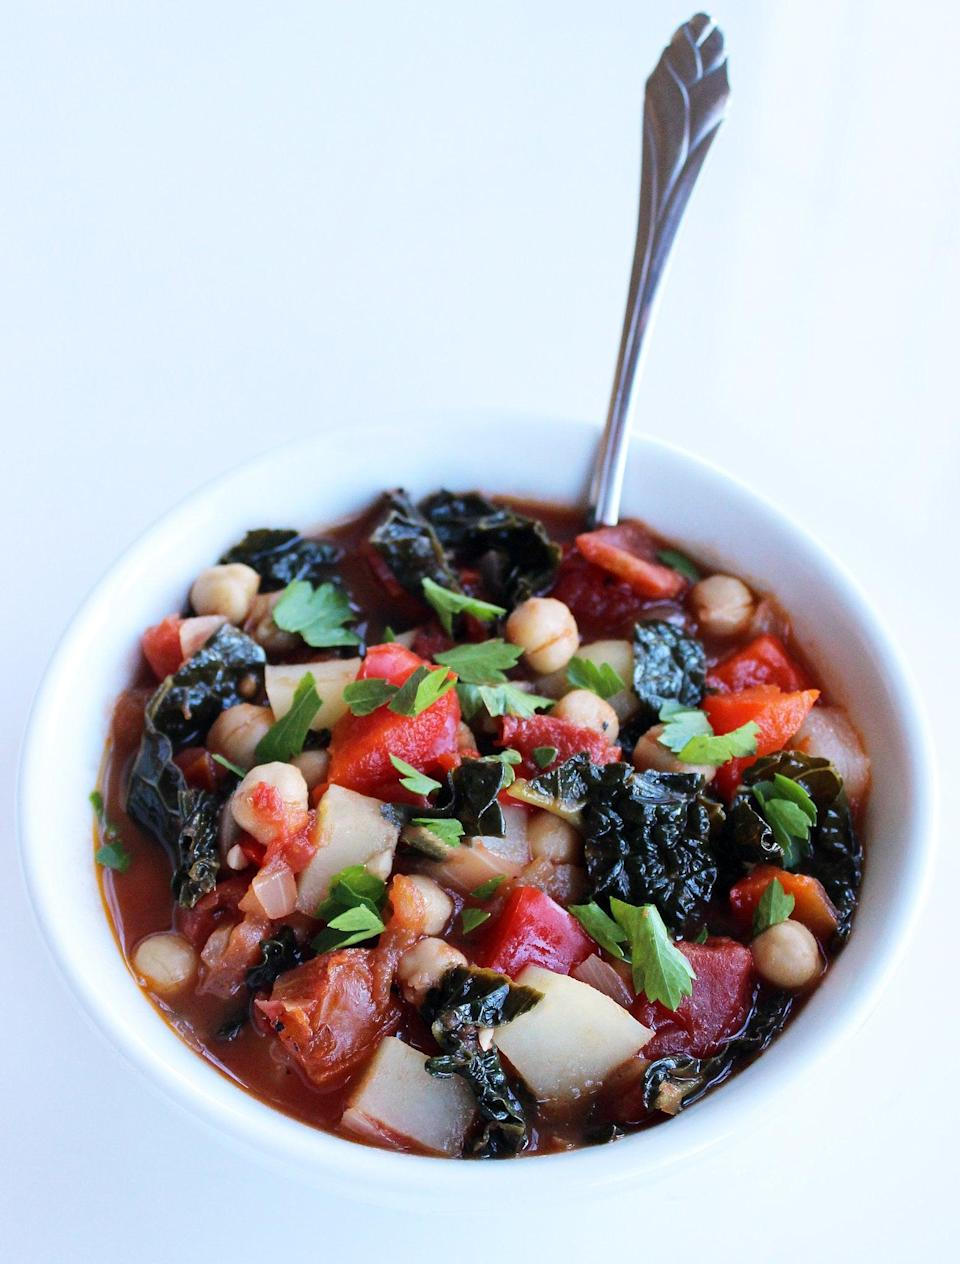 """<p>This metabolism-boosting chickpea and kale soup packs 24 grams of protein per serving, so it will keep you feeling full and satisfied.</p> <p><strong>Get the recipe:</strong> <a href=""""http://www.popsugar.com/fitness/Chickpea-Kale-Soup-36575969/"""" class=""""link rapid-noclick-resp"""" rel=""""nofollow noopener"""" target=""""_blank"""" data-ylk=""""slk:chickpea and kale stew"""">chickpea and kale stew</a></p>"""